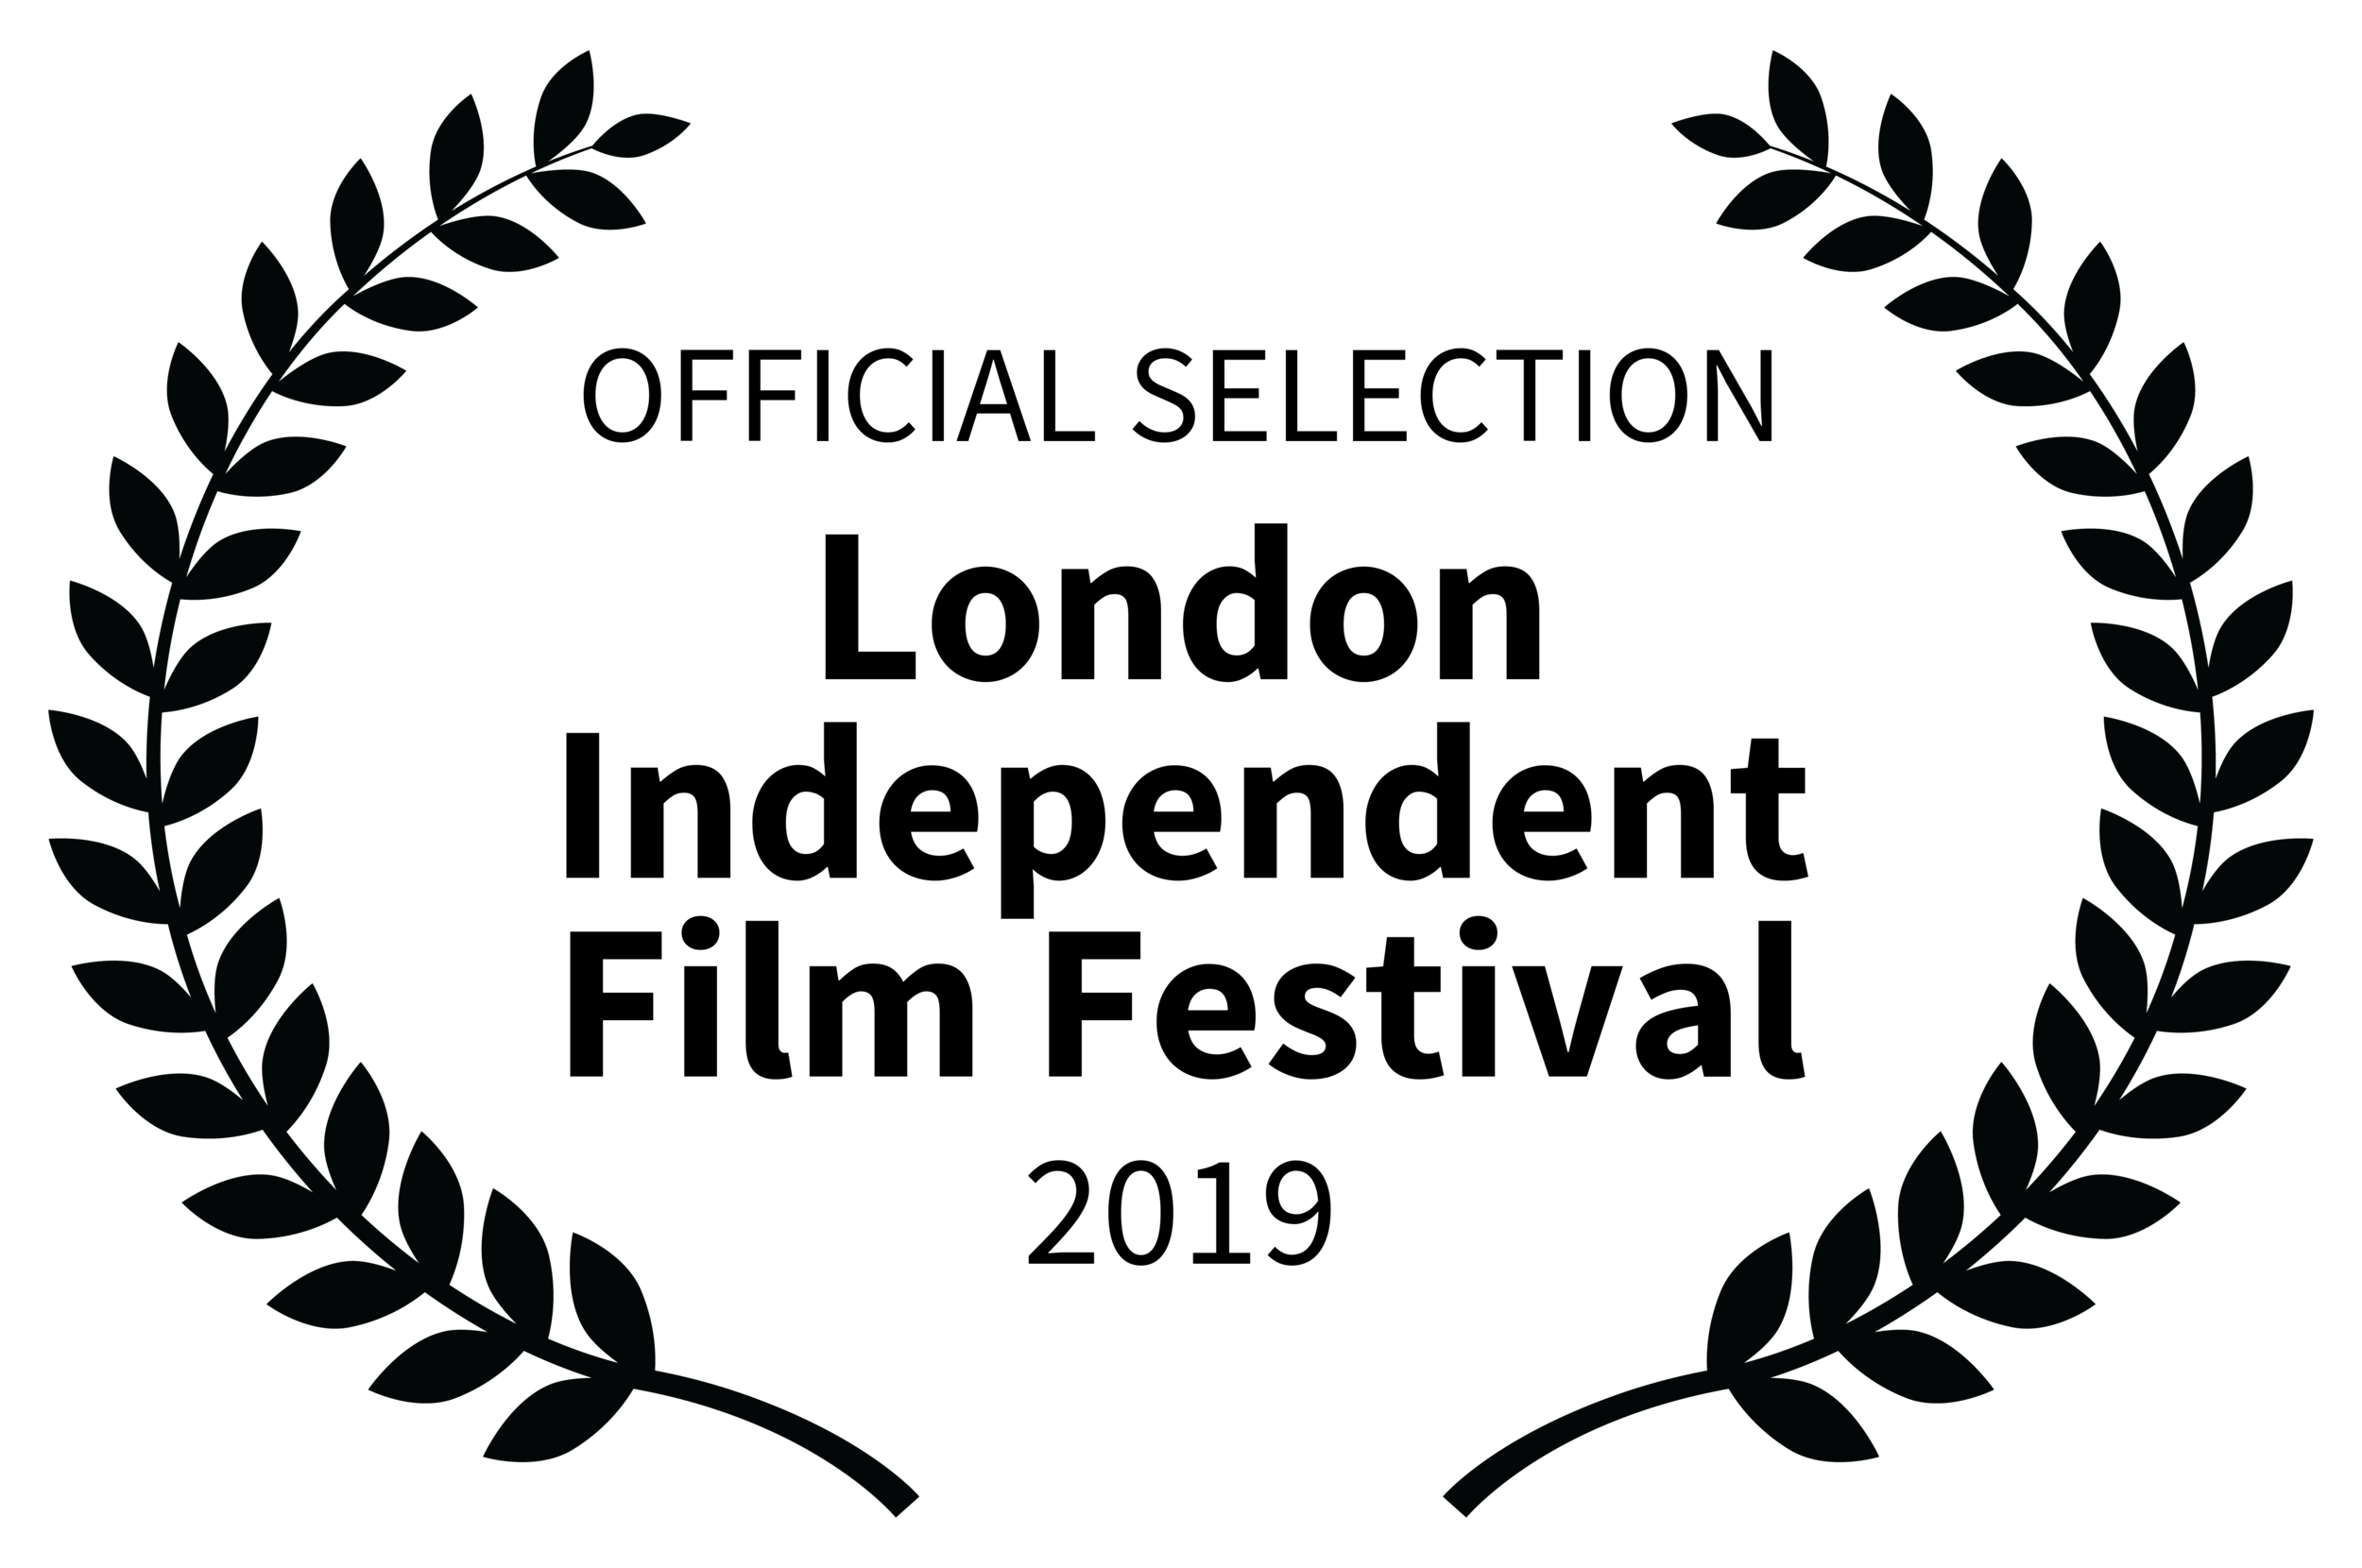 OFFICIALSELECTION-LondonIndependentFilmFestival-2019.png